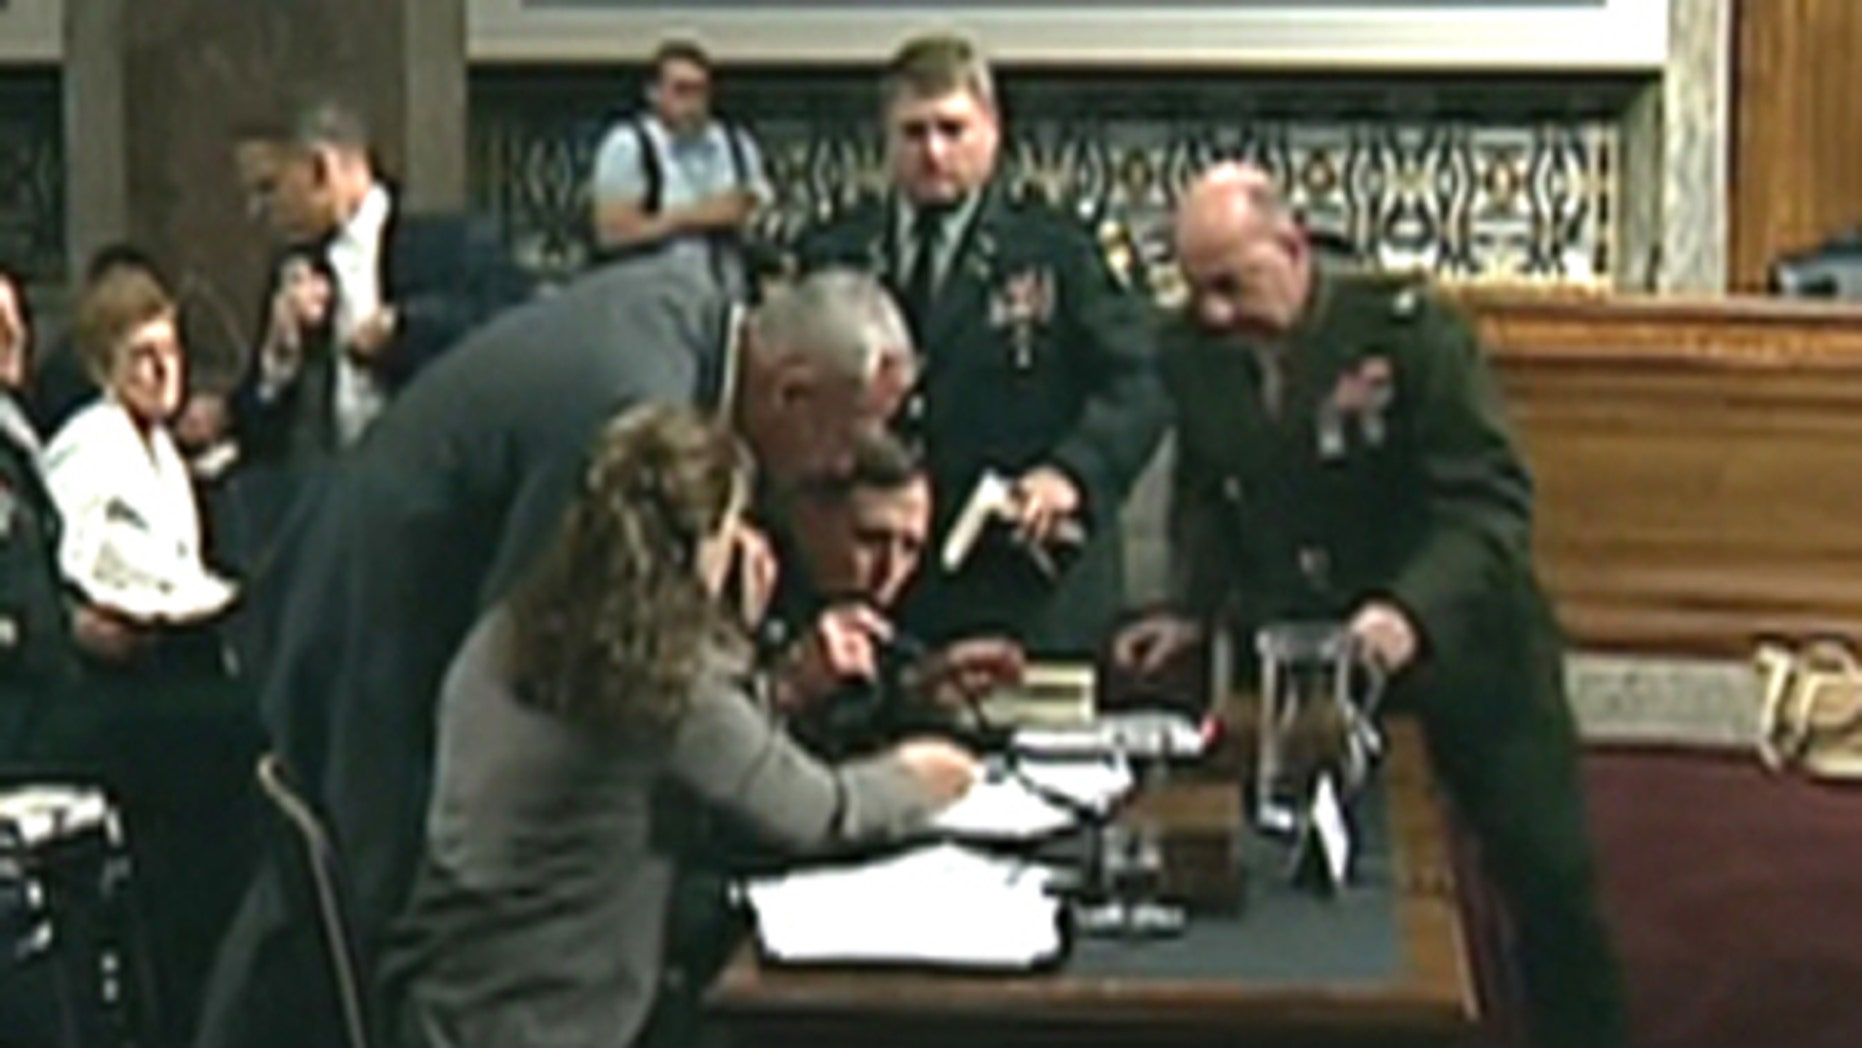 Gen. David Petraeus can be seen slumping over a table during testimony before a Senate panel on June 15 in Washington. (FNC)